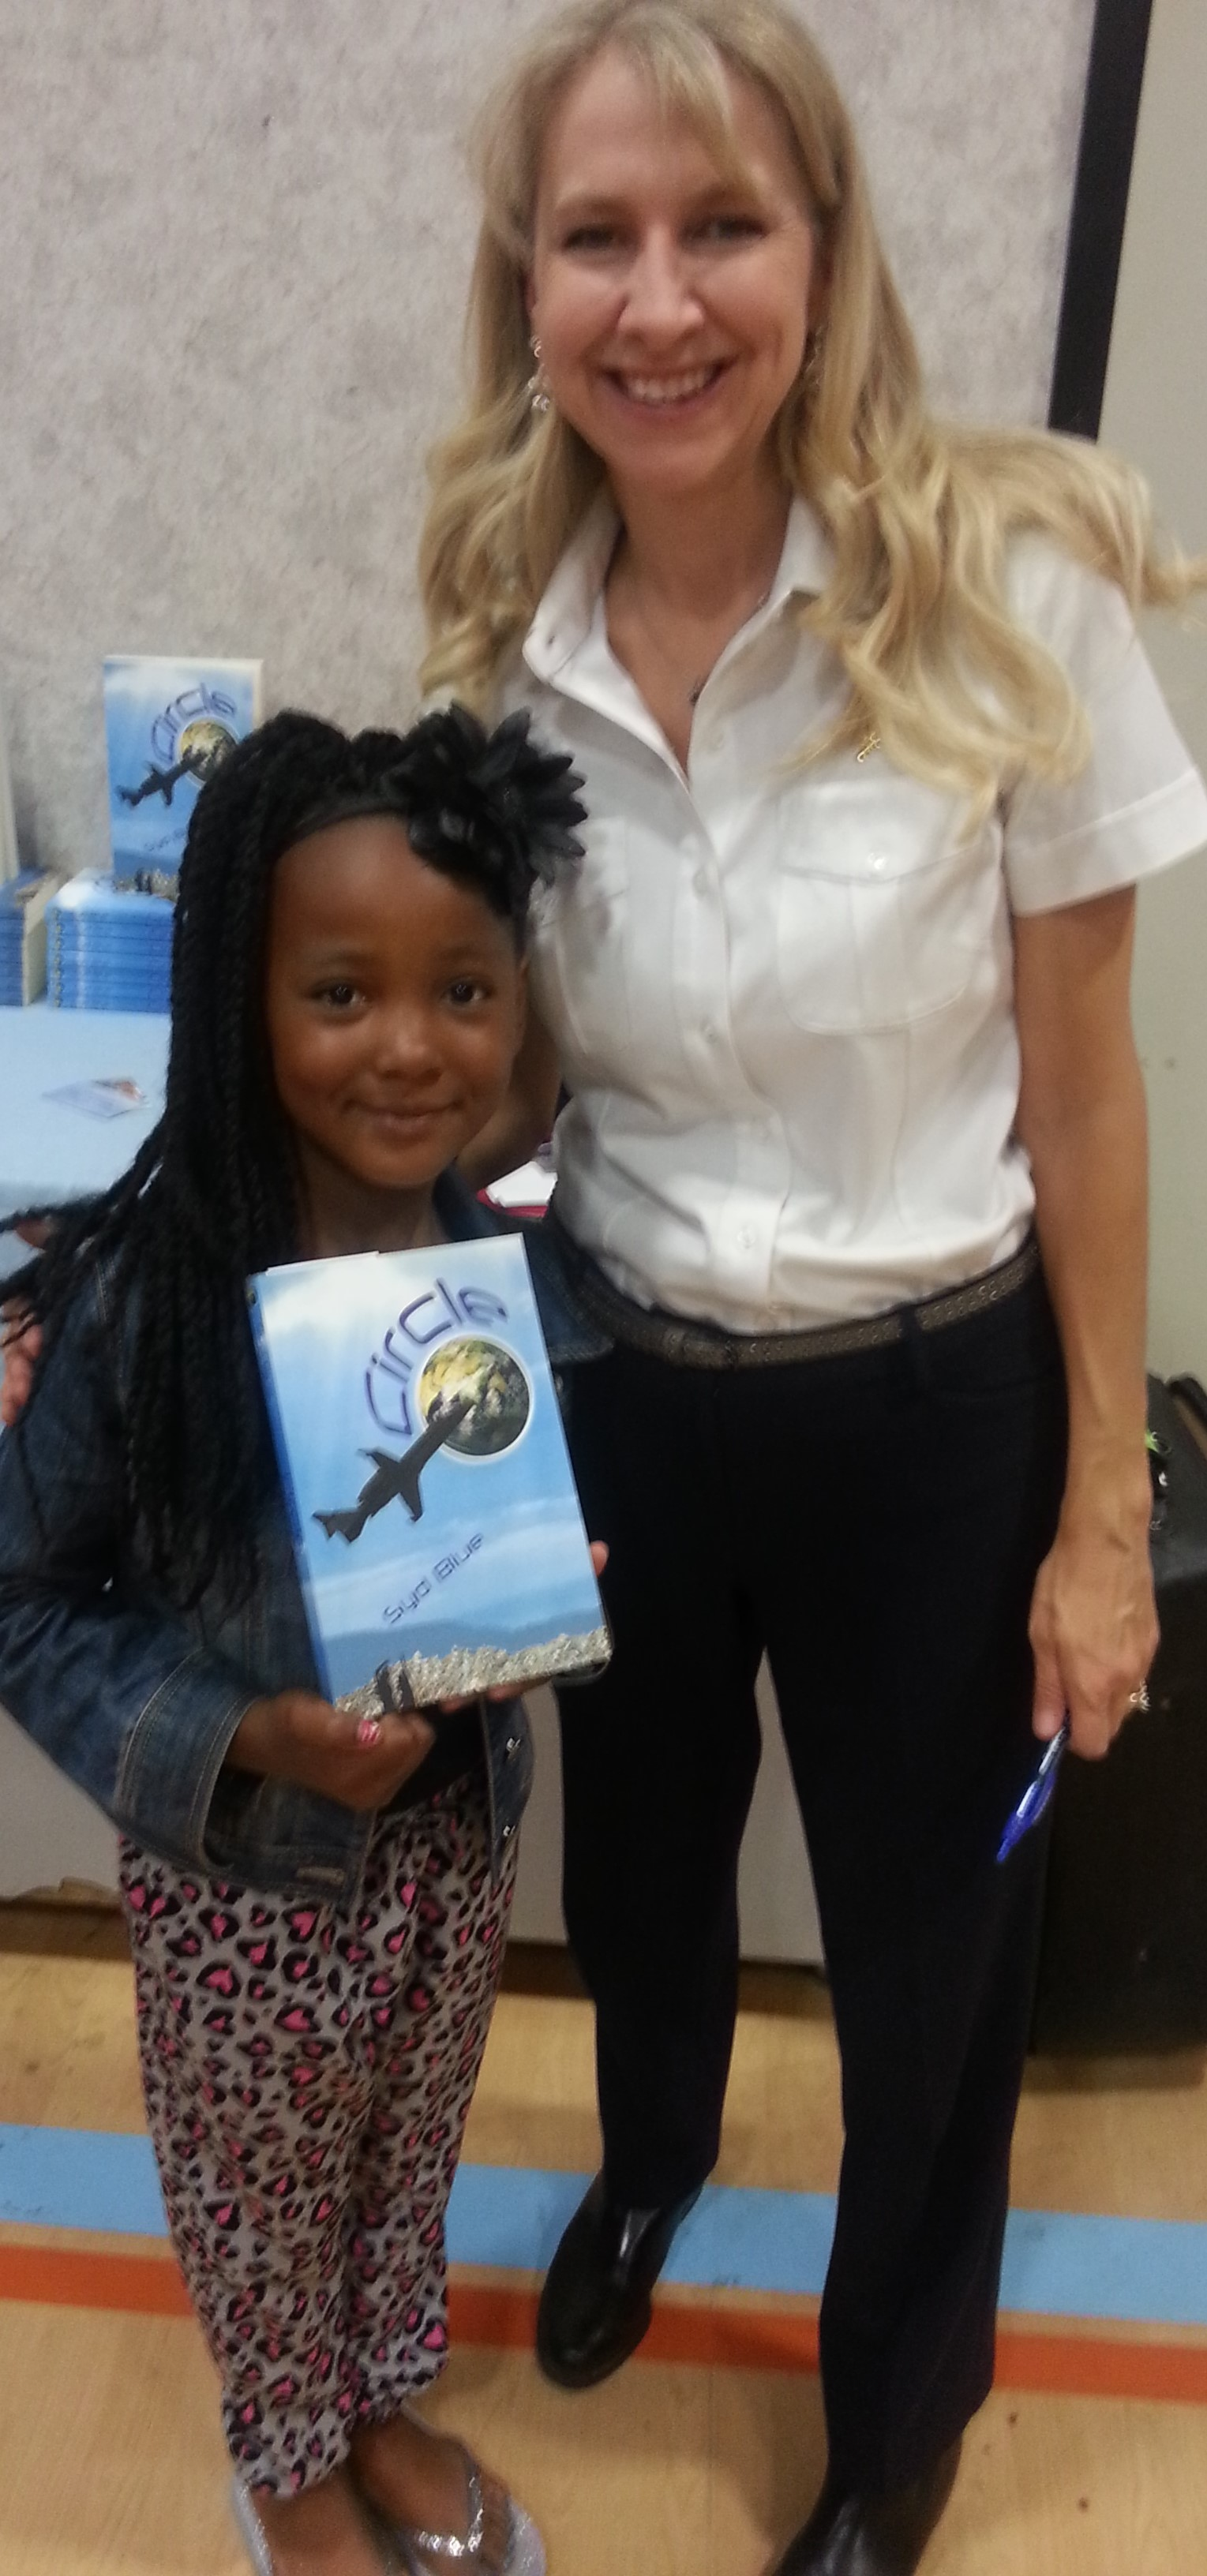 Adorable reader near Edwards AFB wants to be a writer, too.